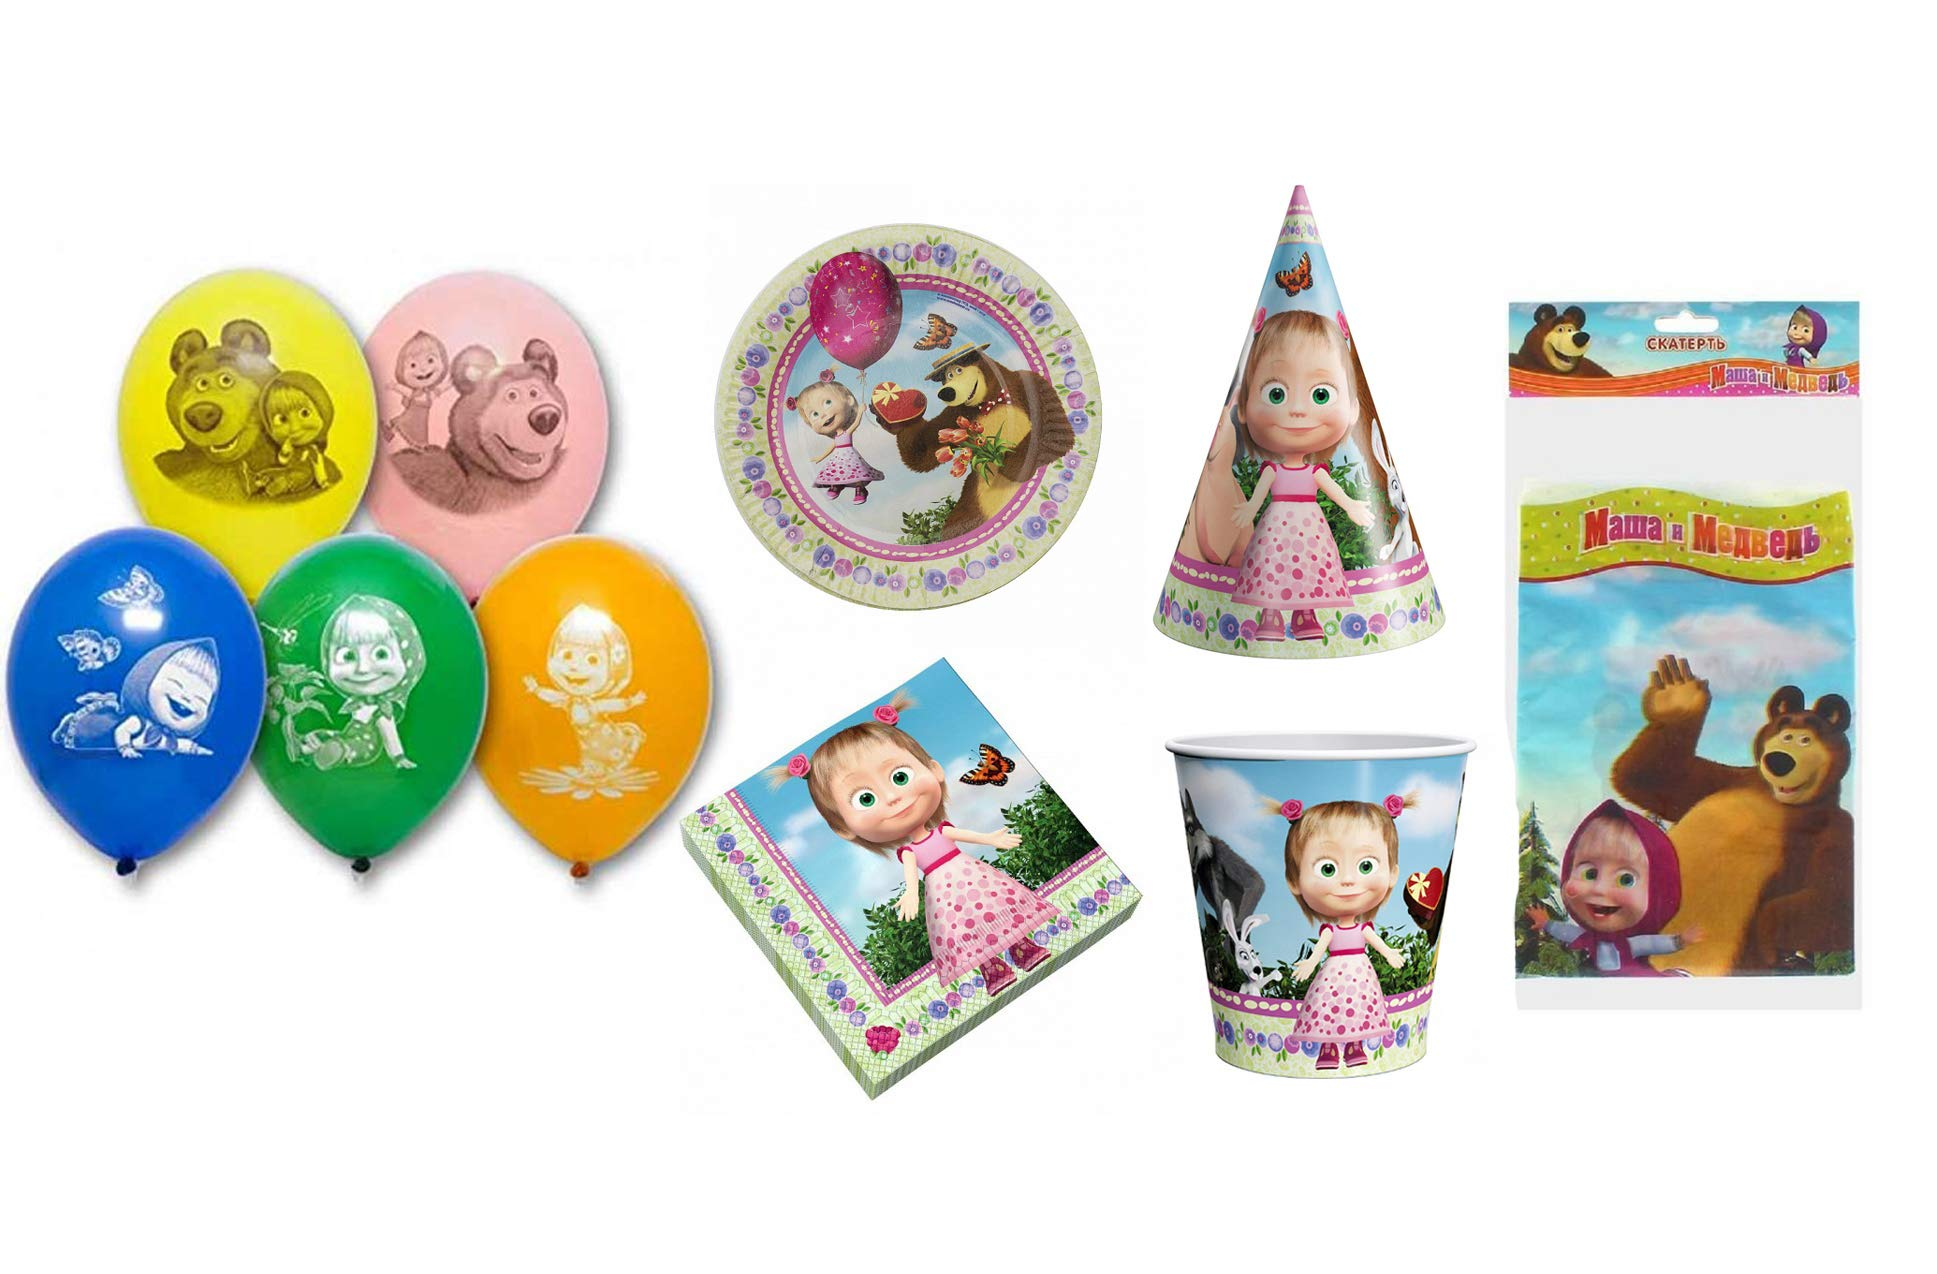 Masha and the Bear Set for Children's Holiday Cartoon Characters Supplies Party Ware Hats Pipes Plates Tablecloth Cup Balloon Napkins hat